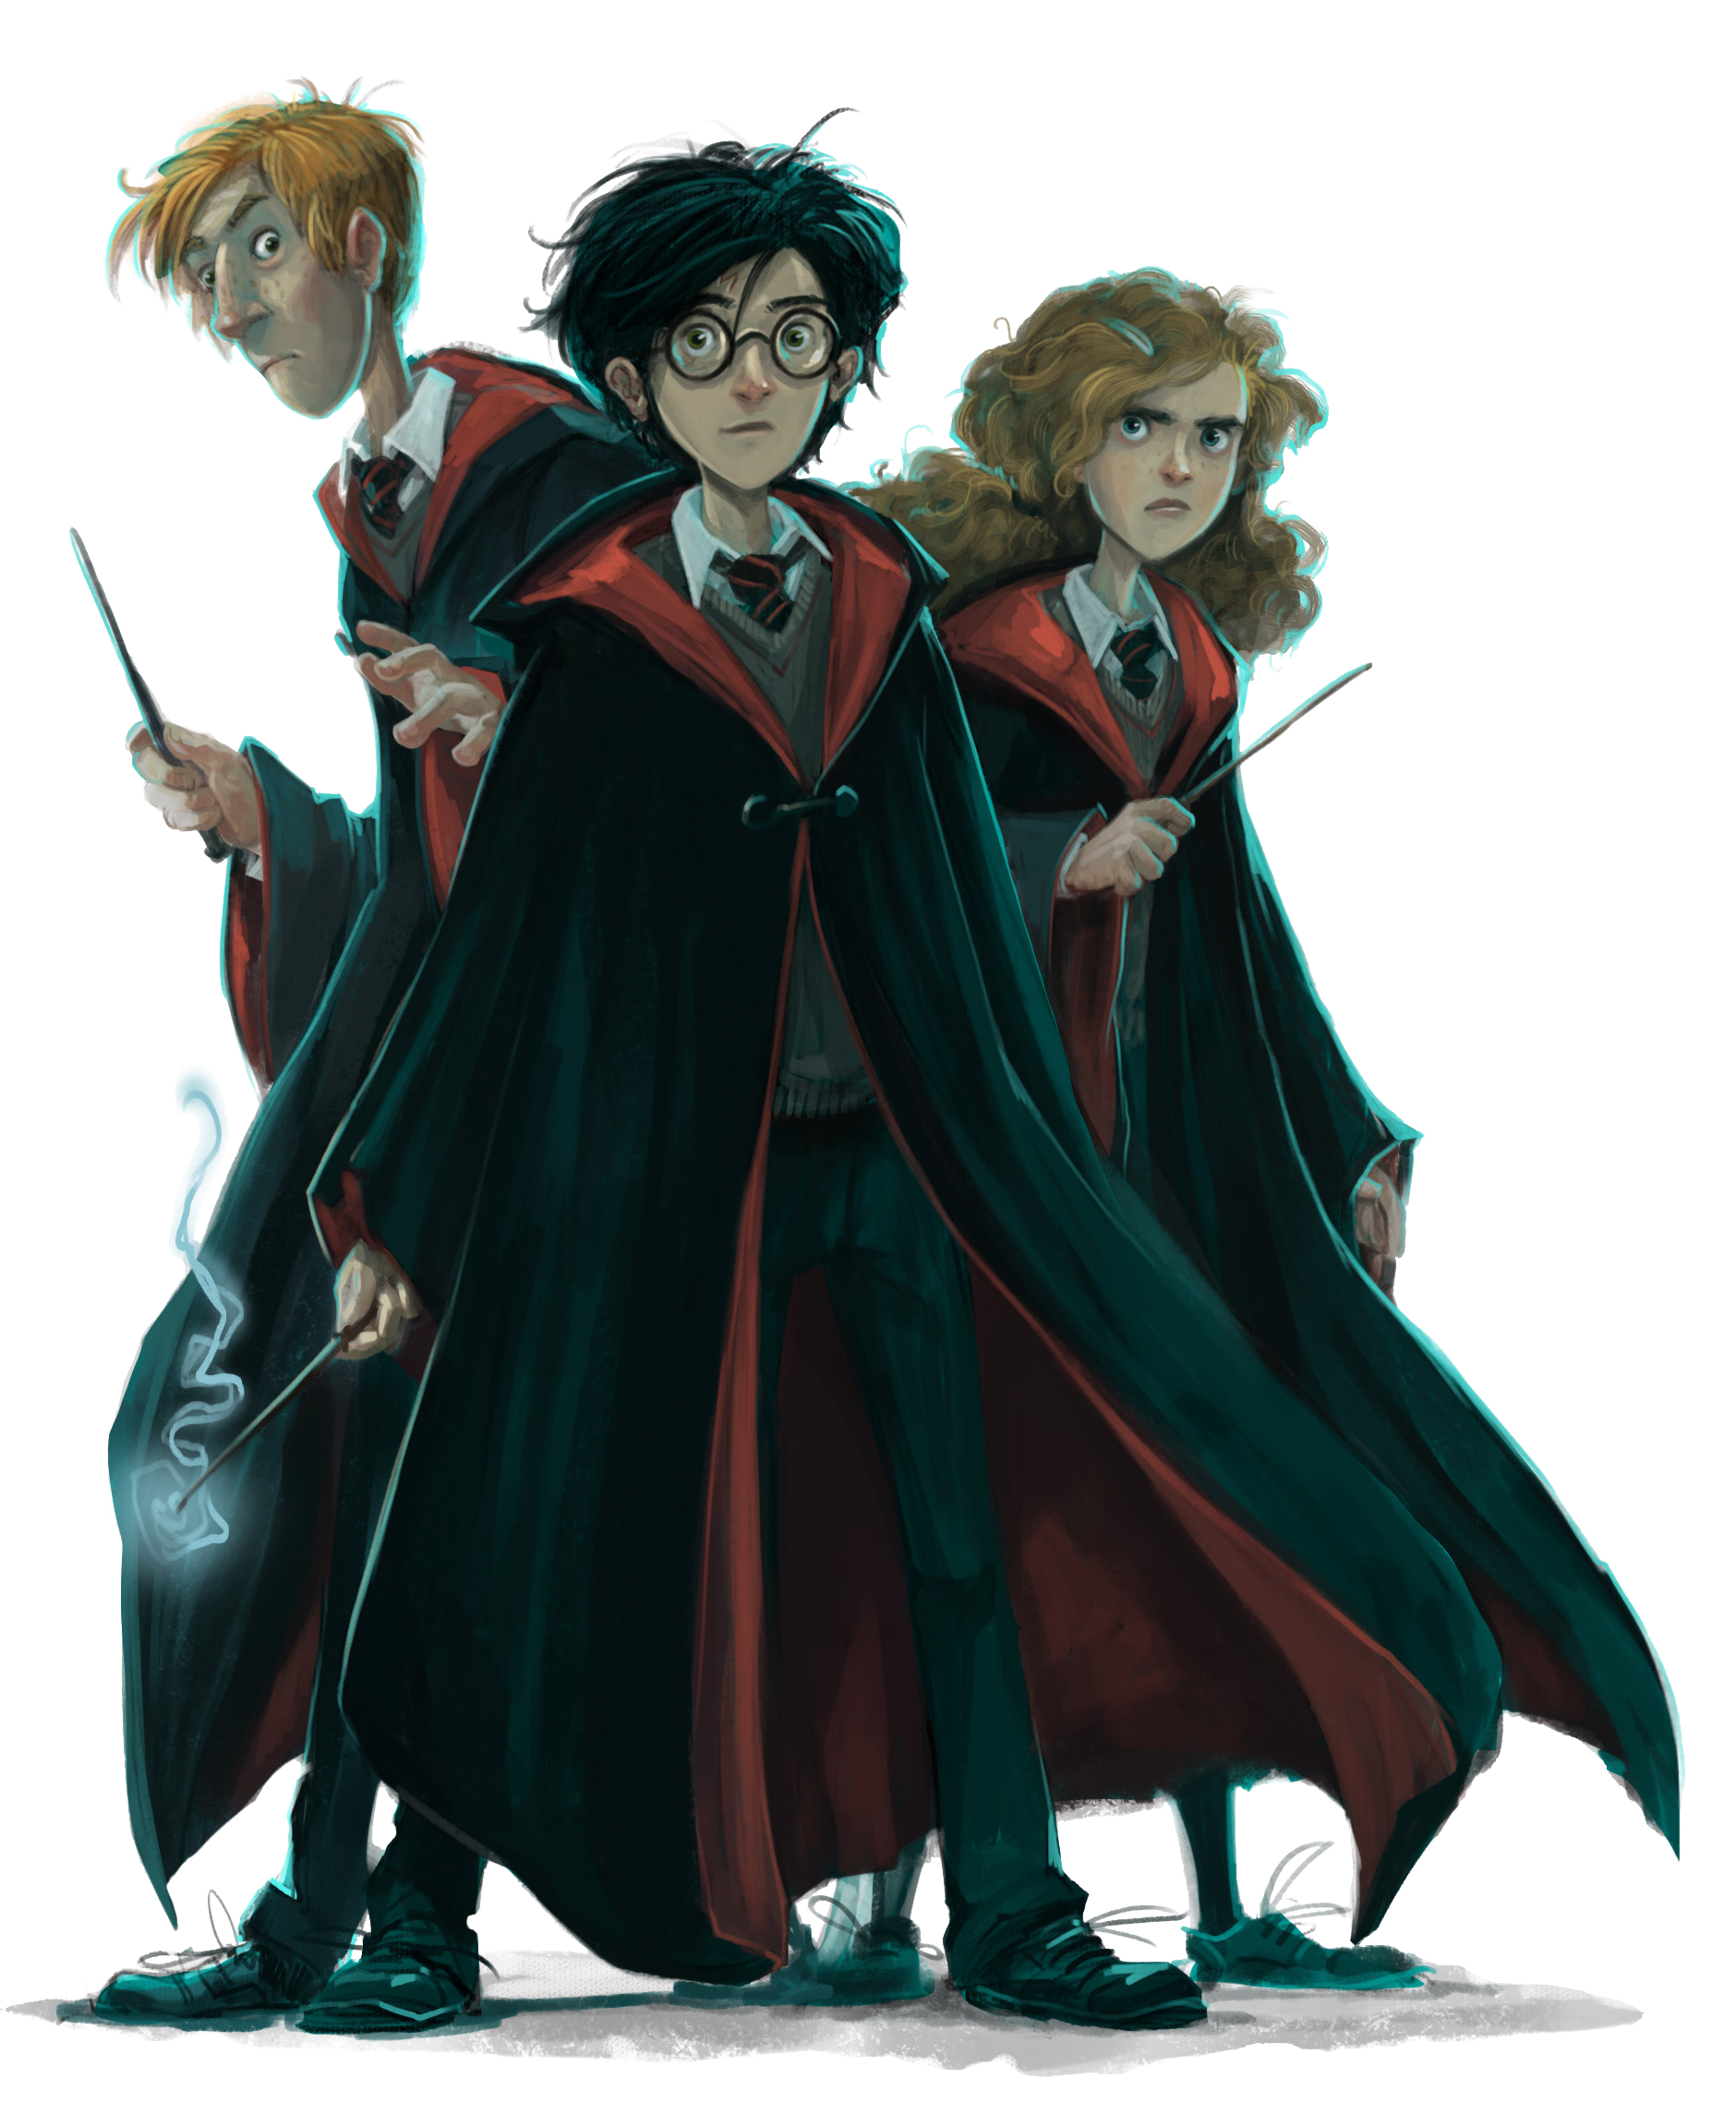 File:Trio bloomsbury.png